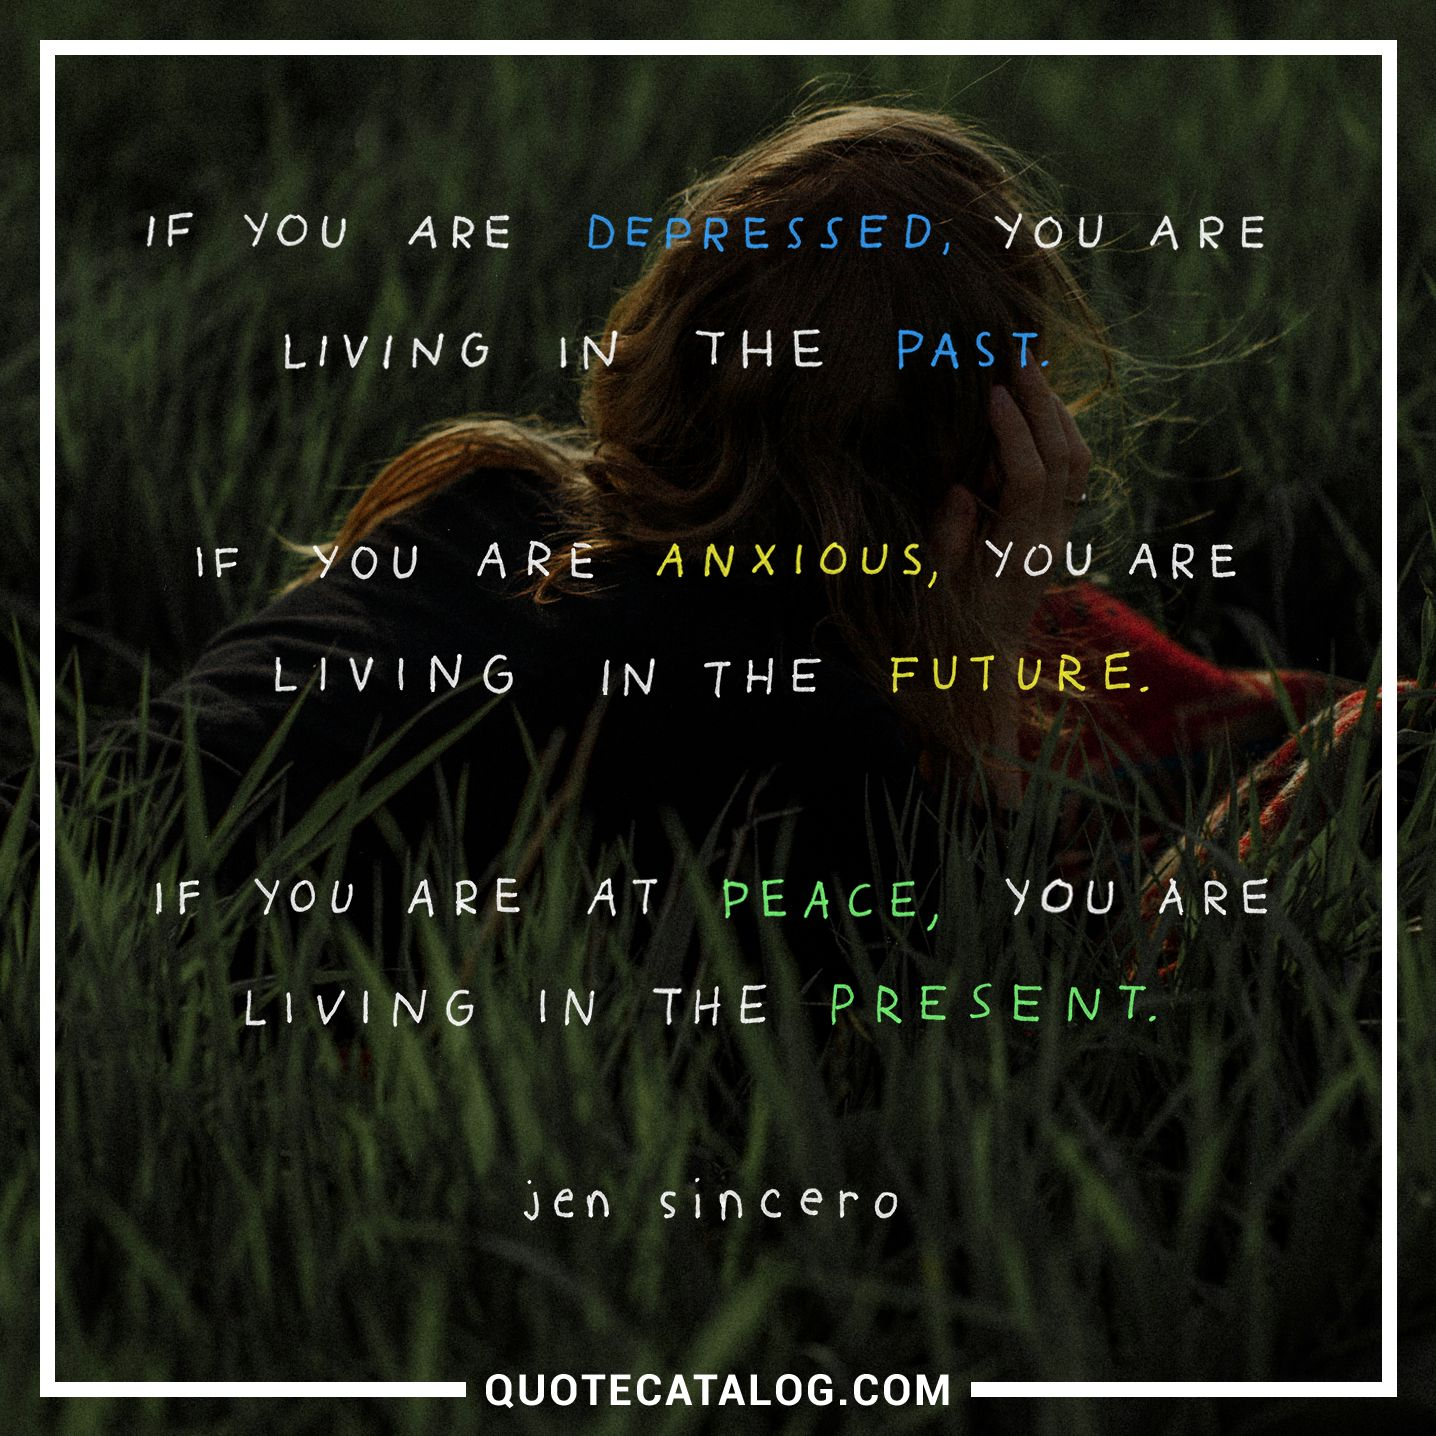 Image of: If You Are Depressed You Are Living In The Past If You Are Anxious You Are Living In The Future If You Are At Peace You Are Living In The Present Everyday Power Jen Sincero Quote If You Are Depressed You Are Living In